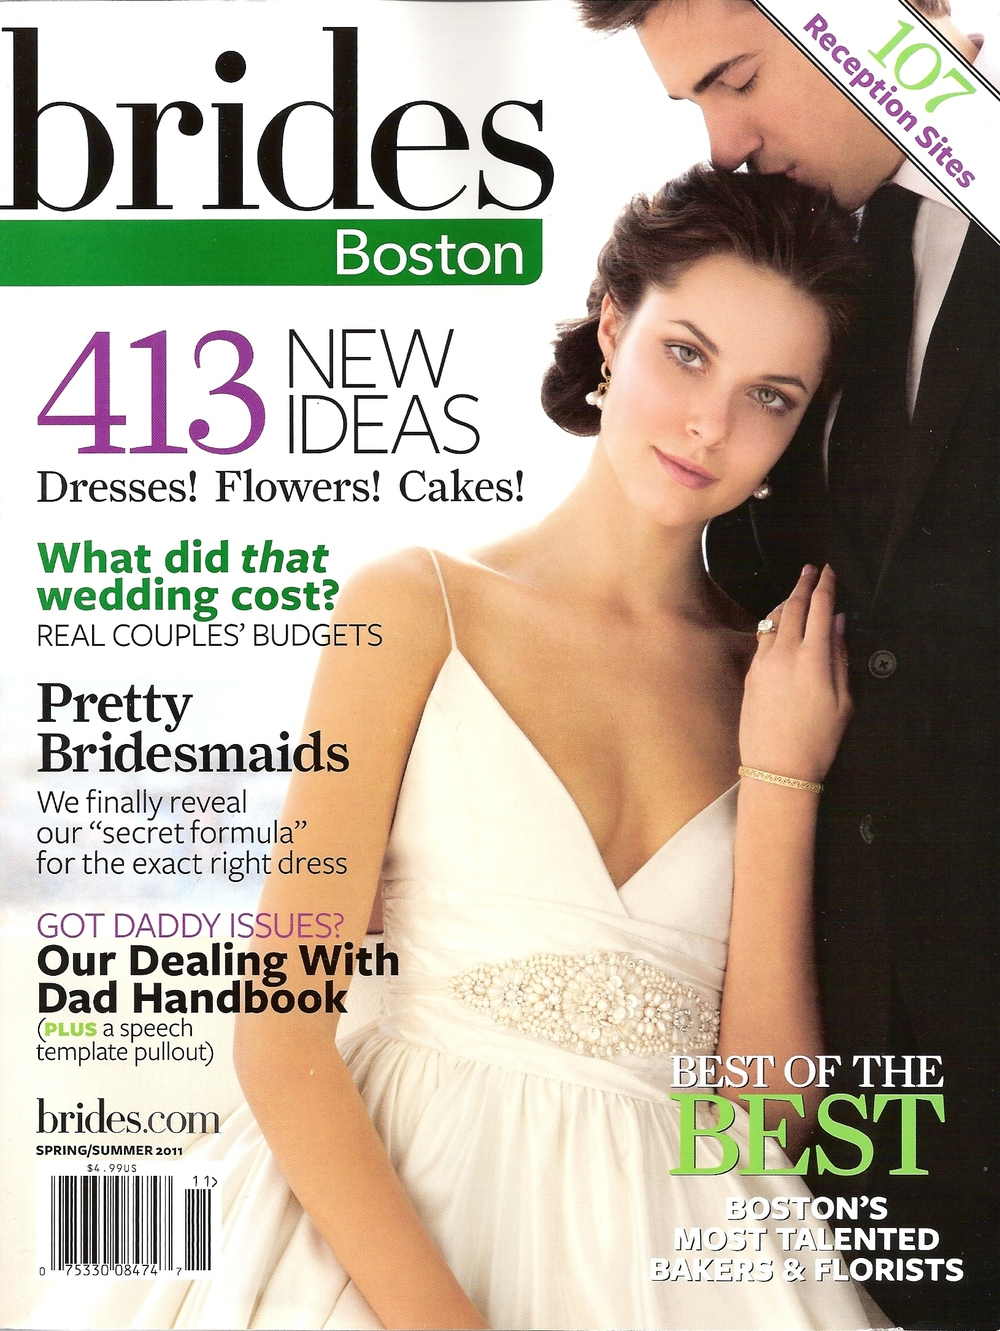 Brides Boston 2011.jpg